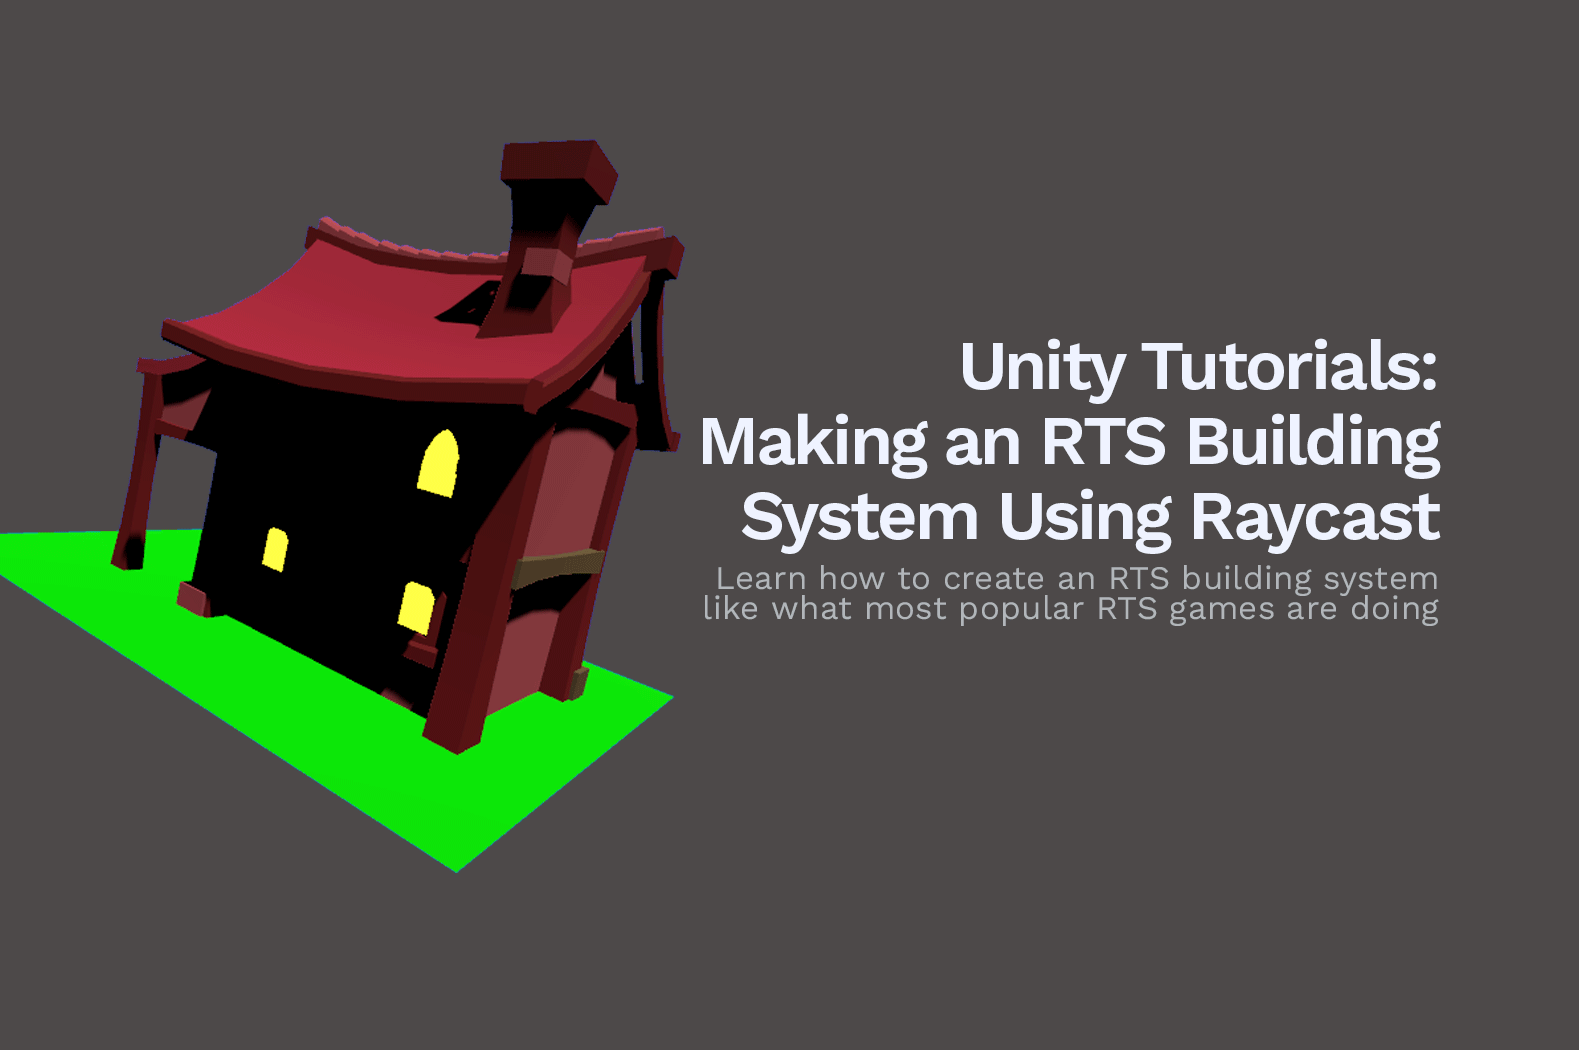 Unity Tutorial: Making an RTS Building System Using Raycast